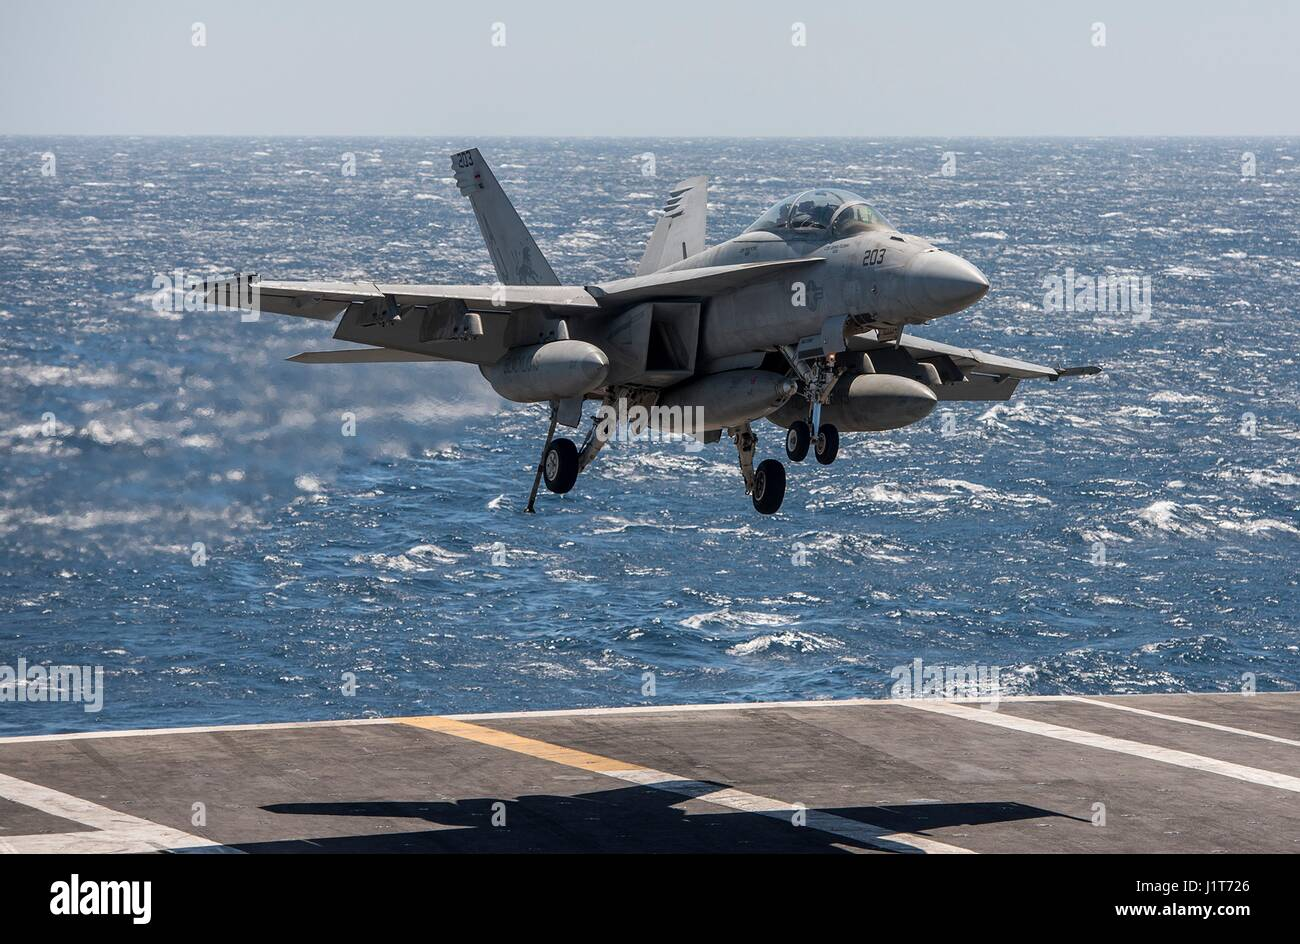 A U.S. Navy F/A-18F Super Hornet fighter aircraft approaches to land on the flight deck of the Nimitz-class aircraft - Stock Image